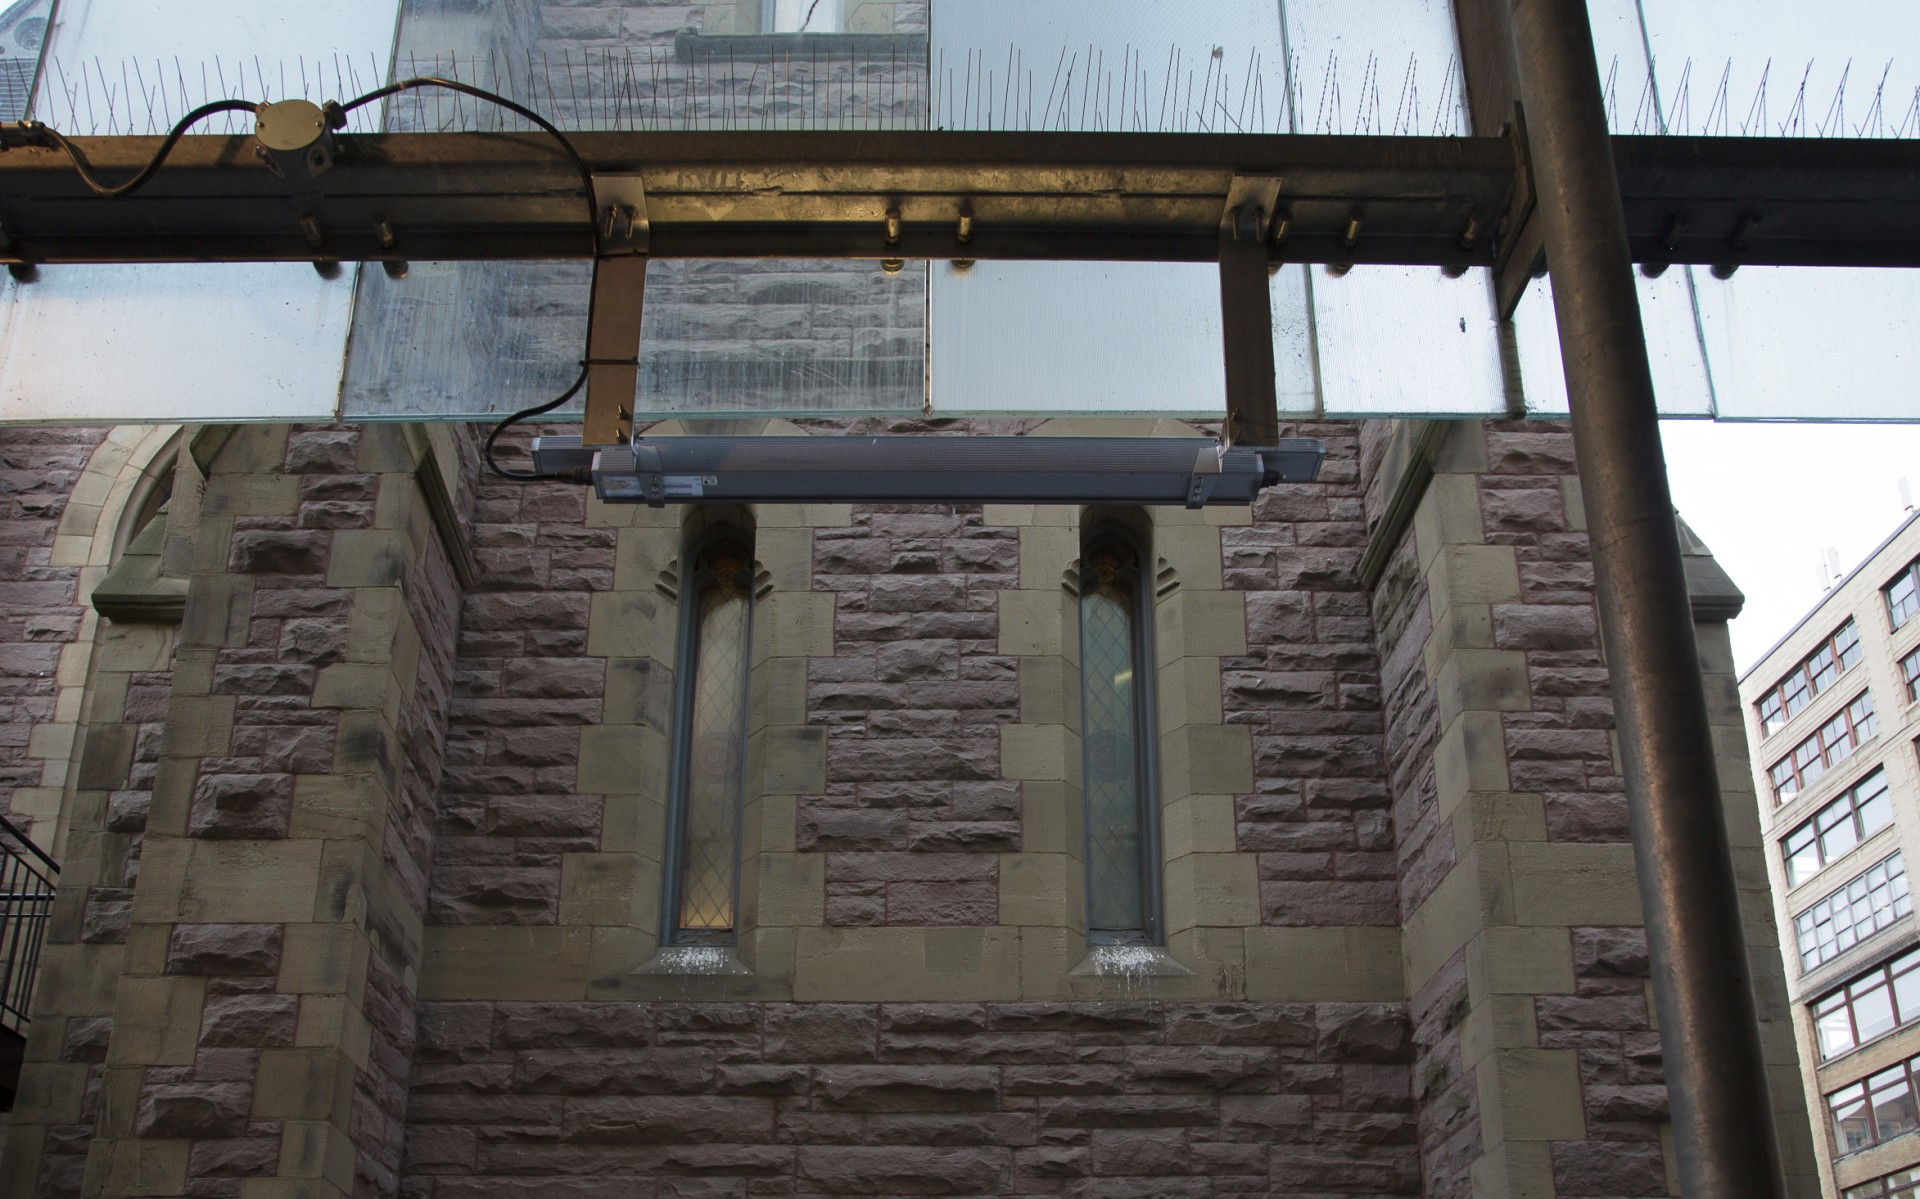 To graze the building without damaging the original stone, Lumenpulse fixtures were mounted to adjacent buildings.